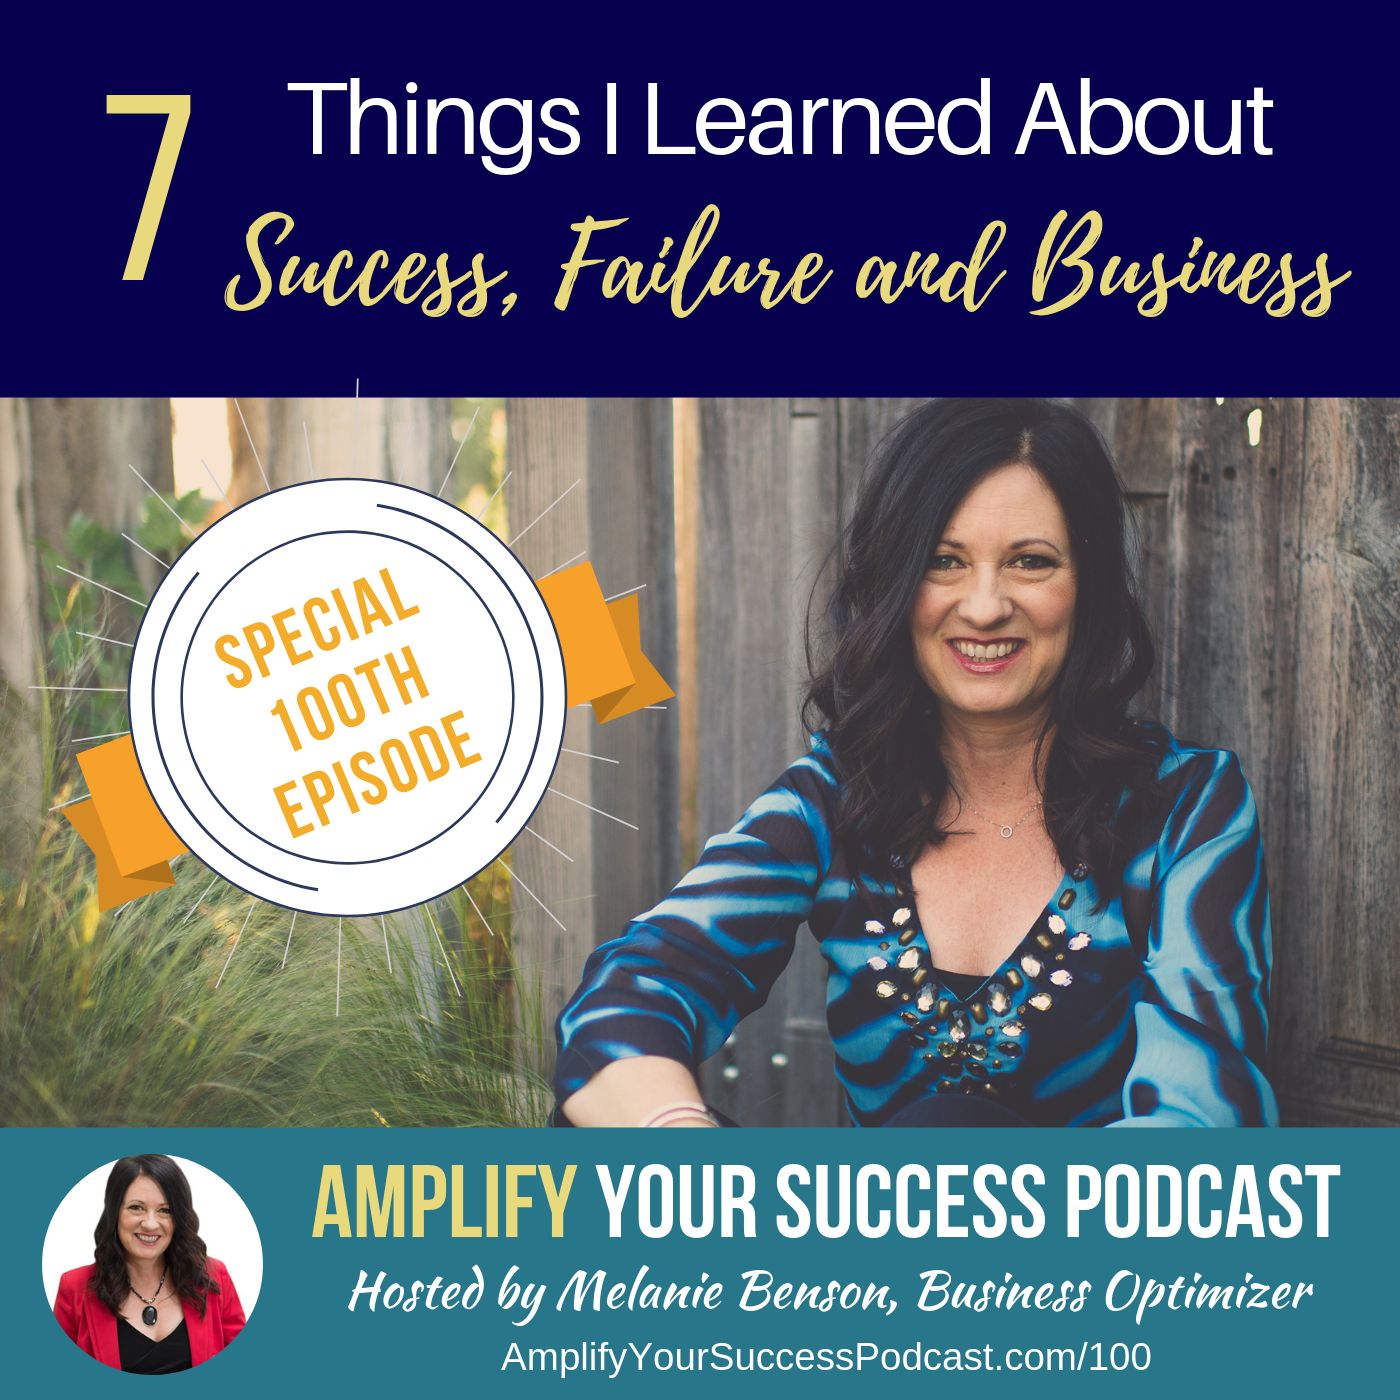 7 Things I Learned About Success, Failure and Business 2